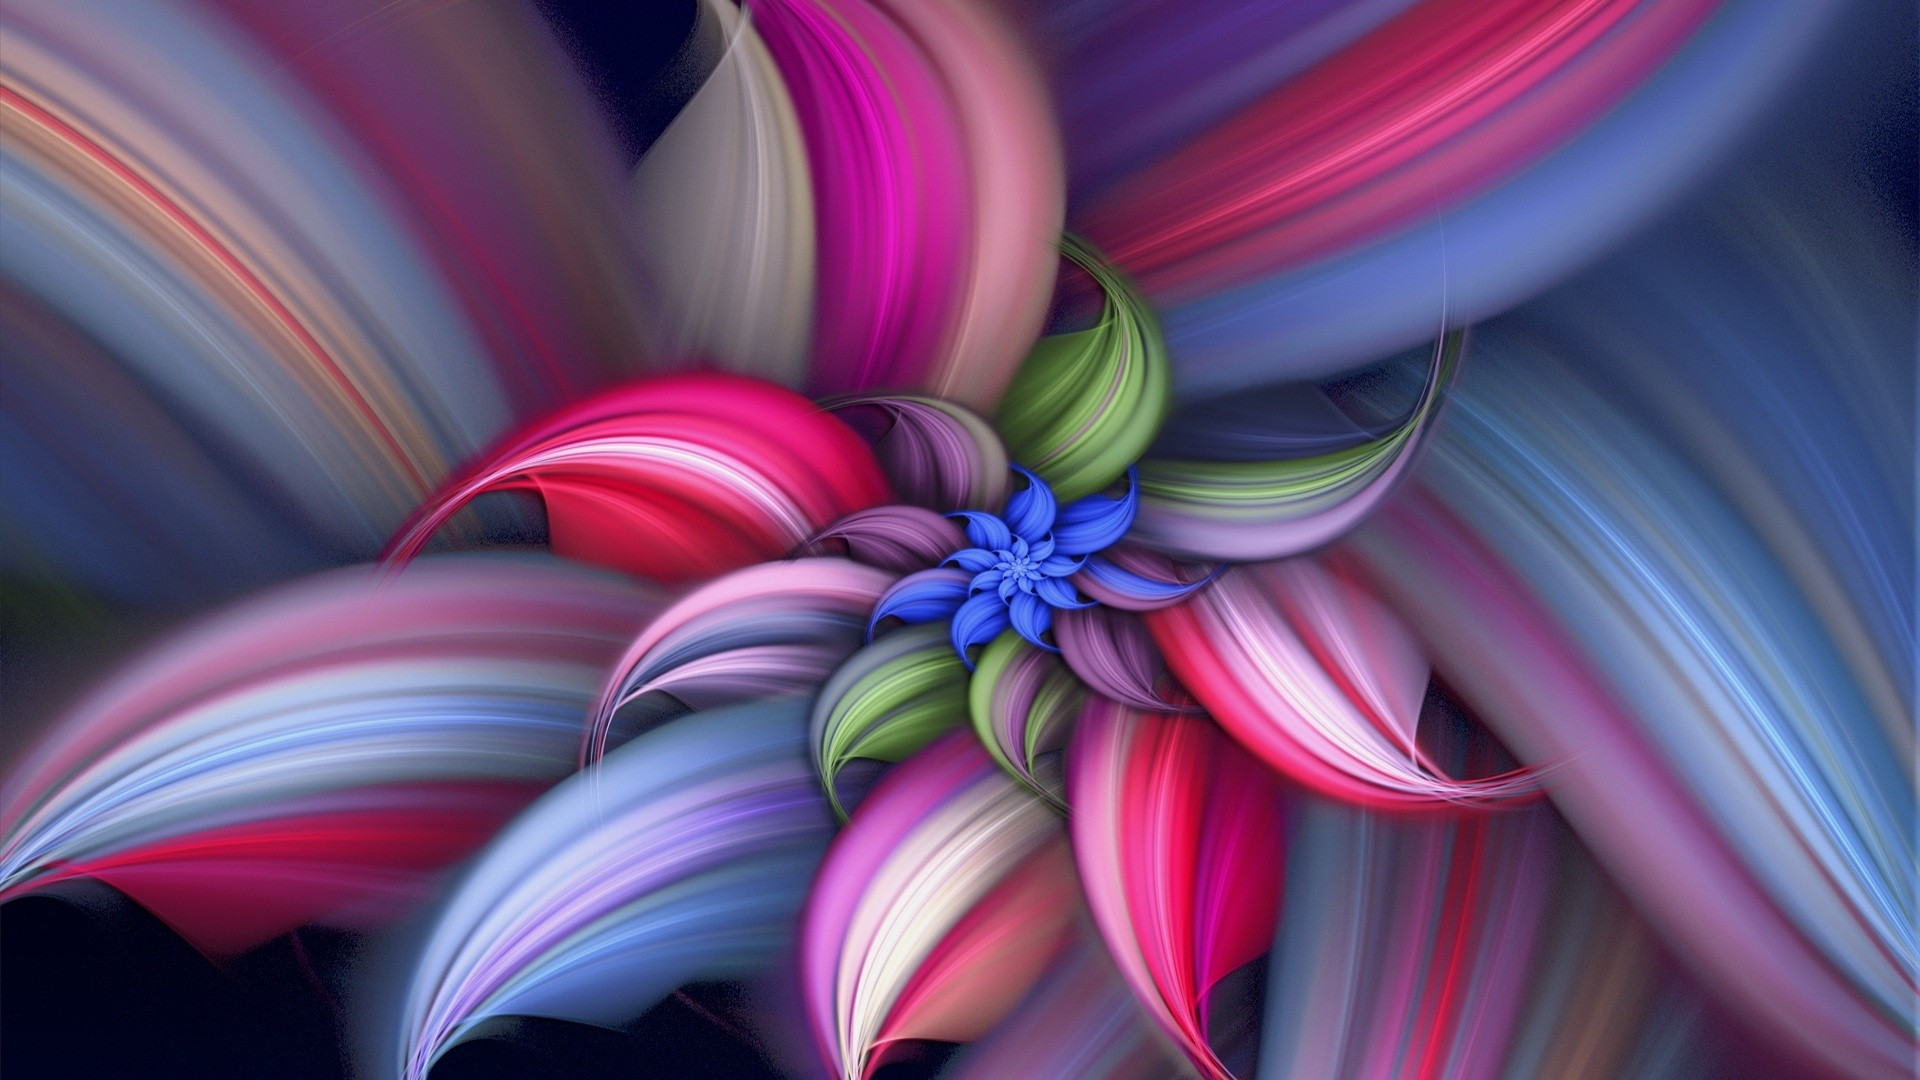 Abstract Flower Vector Design HD Wallpaper Abstract Flower Vector 1920x1080